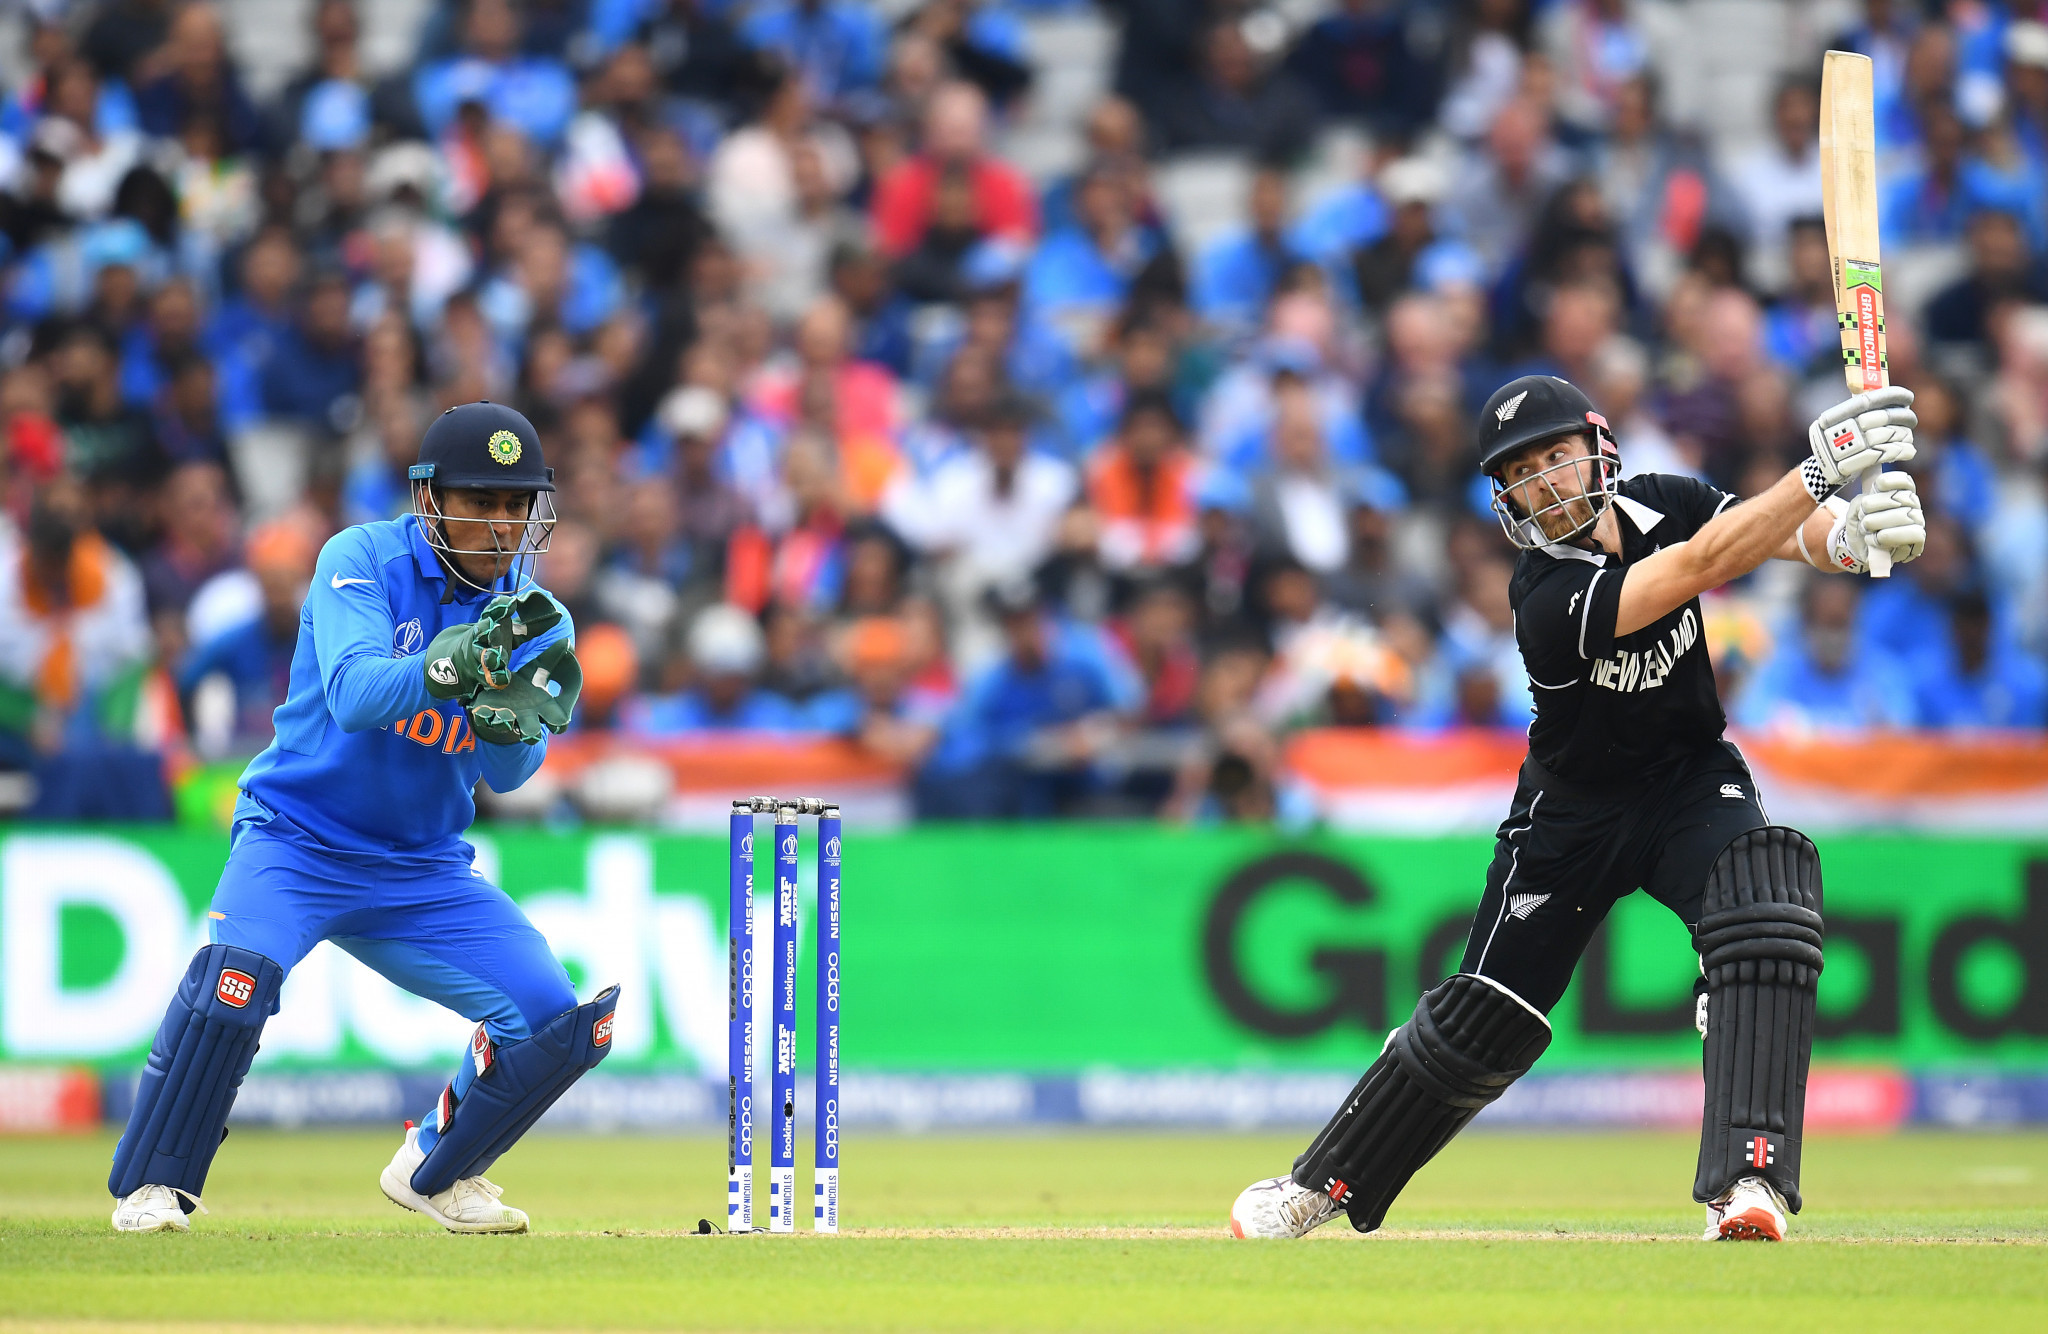 New Zealand's captain Kane Williamson scored 67 to help his side reach 211 for five wickets at Old Trafford in Manchester before rain forced play to be abandoned for the day ©Getty Images